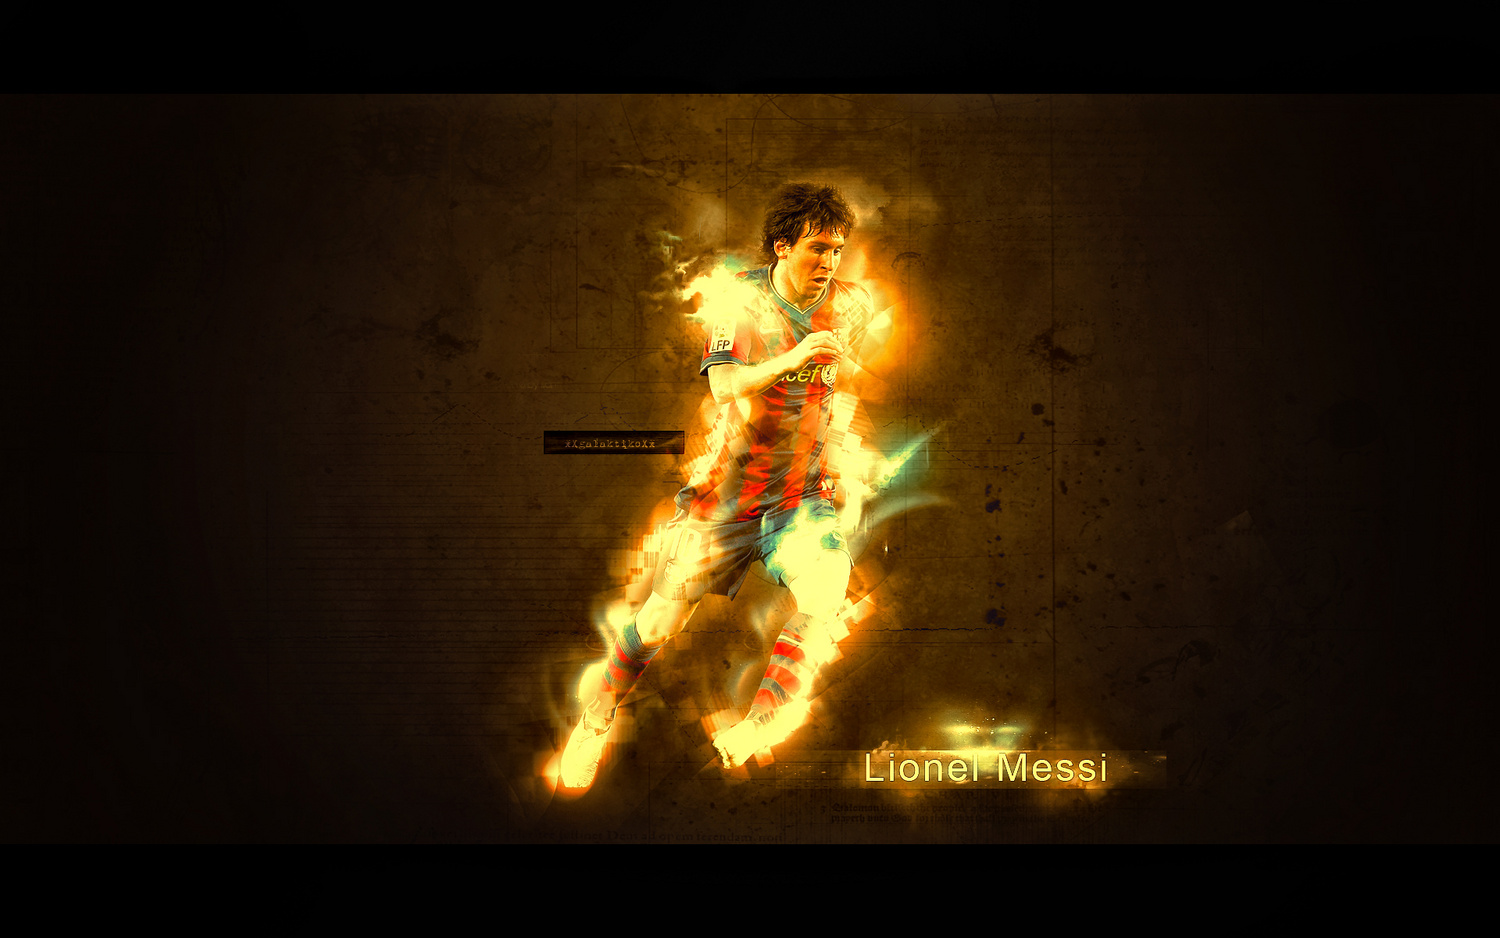 Lionel Messi Wallpapers: July 2011 | Lionel Messi Picture | Lionel Messi Photo